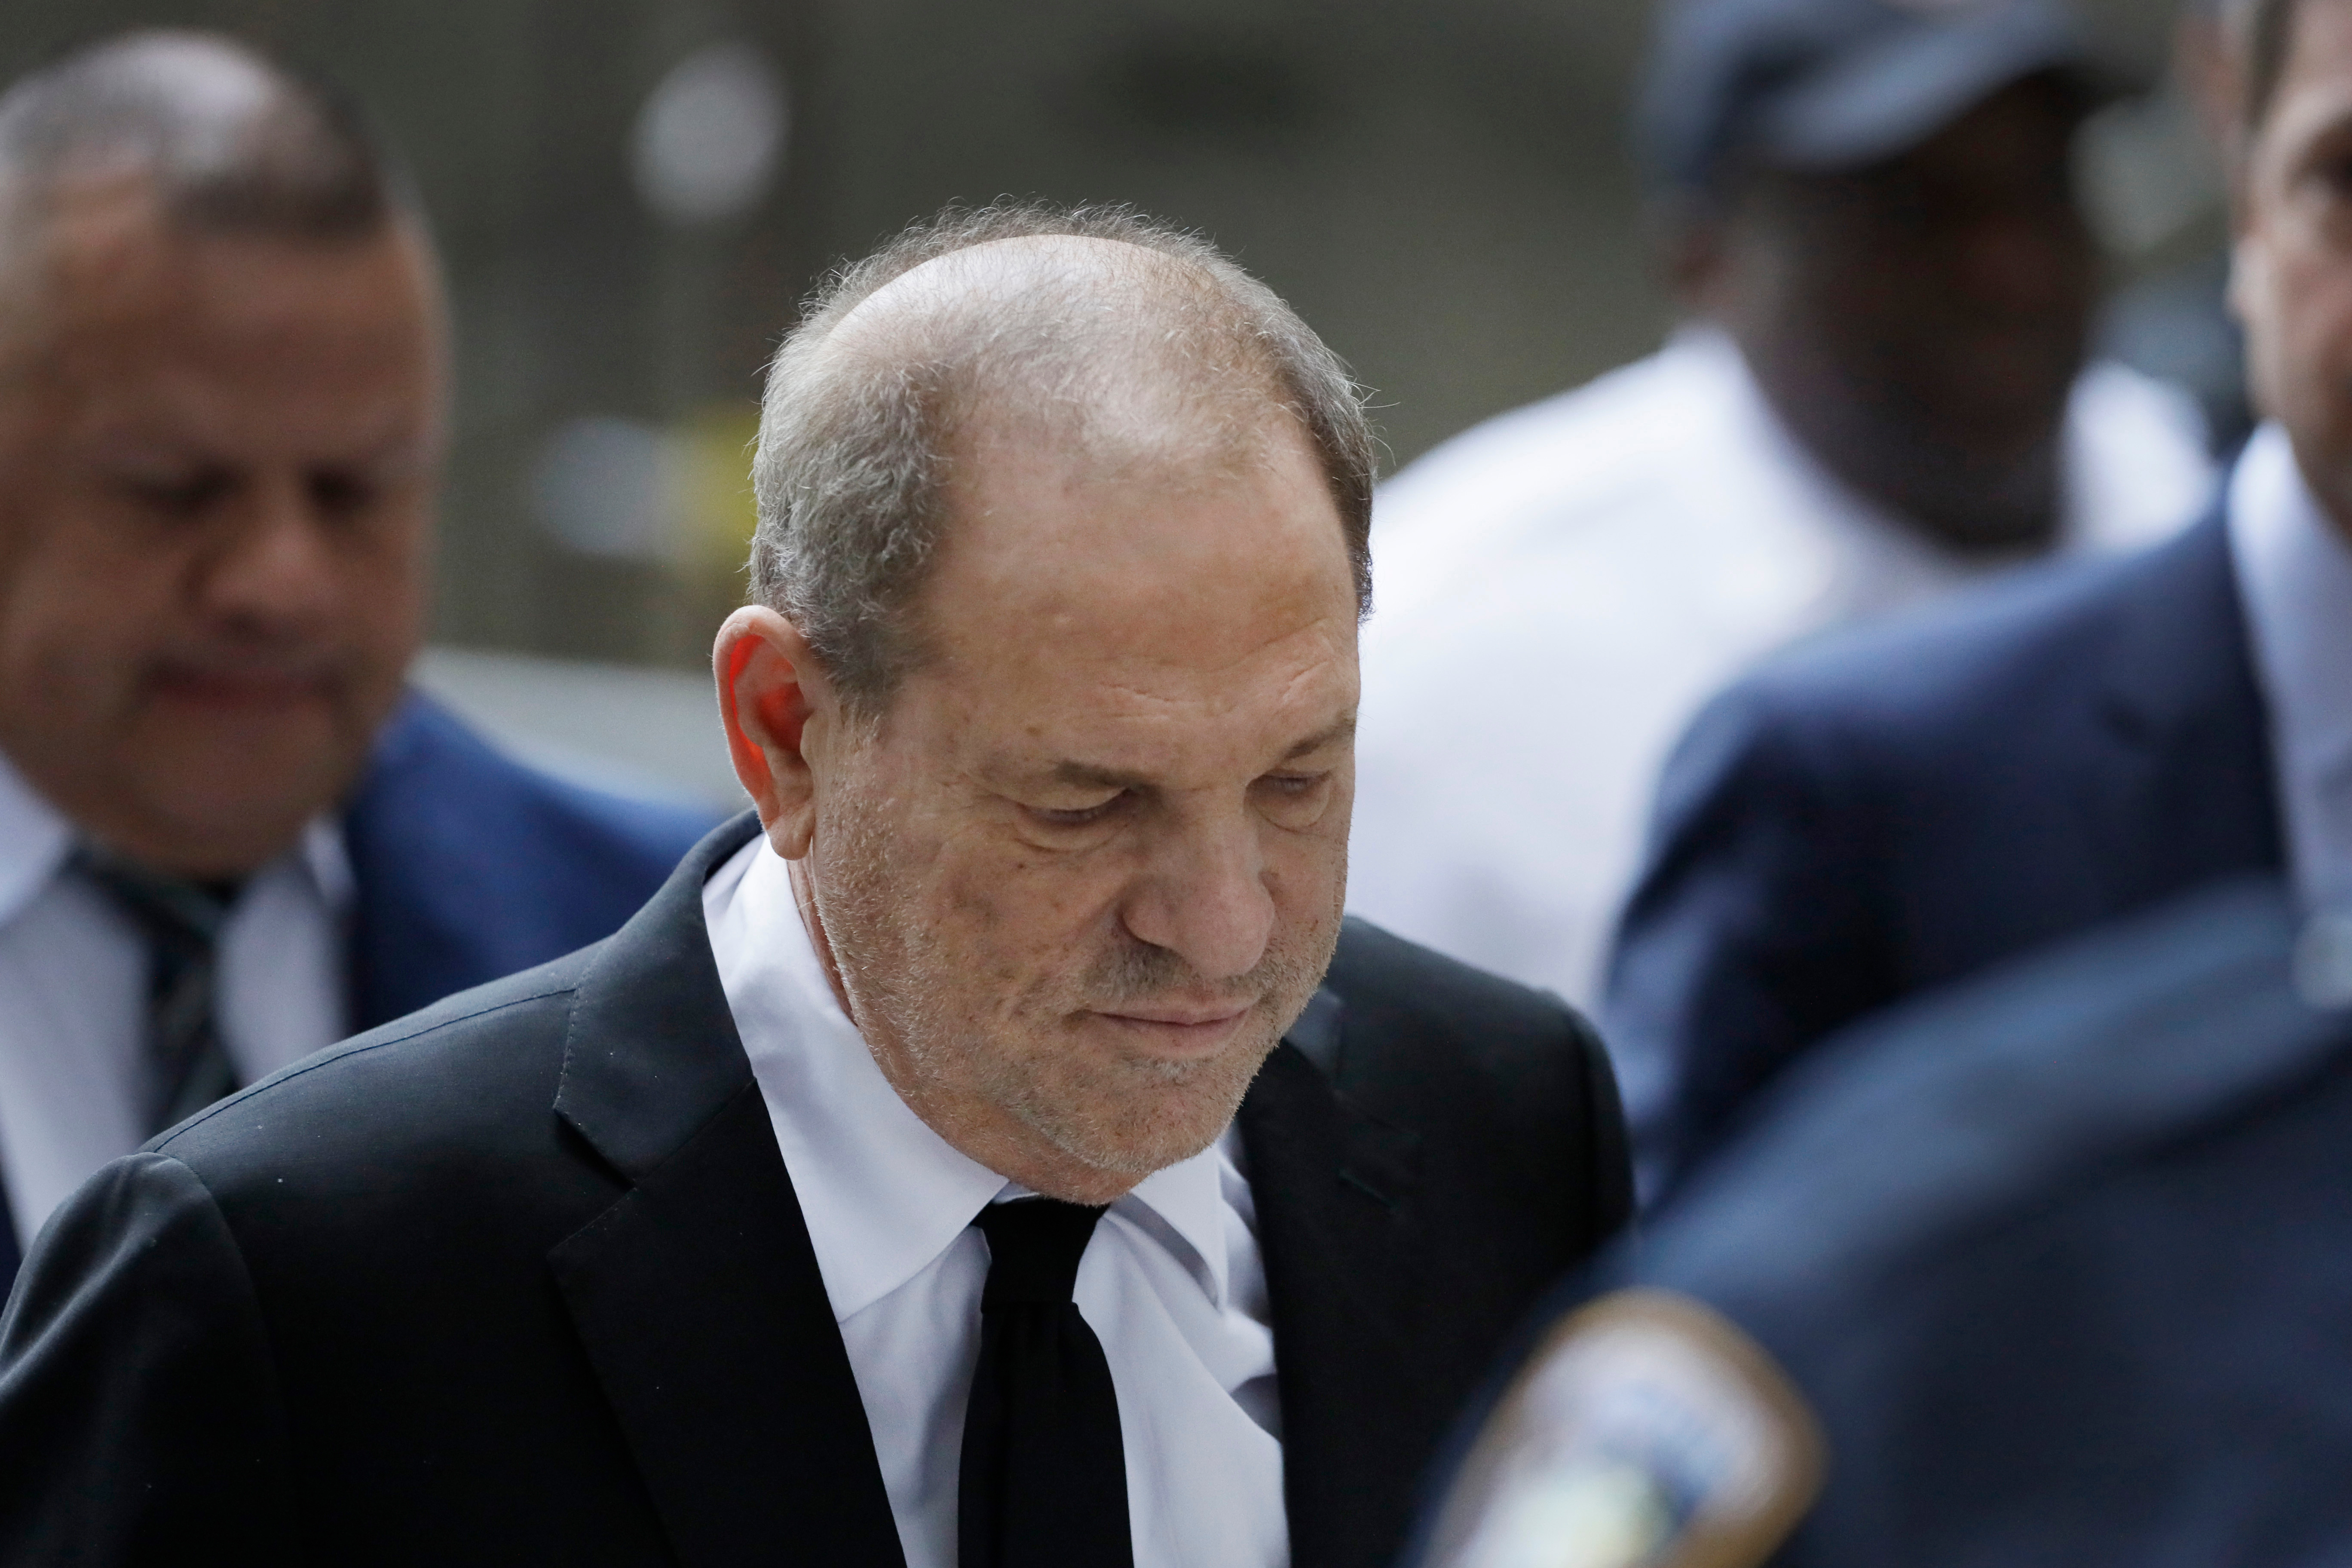 Harvey Weinstein Pleads Not Guilty To New Indictment; Trial Pushed To January – Update